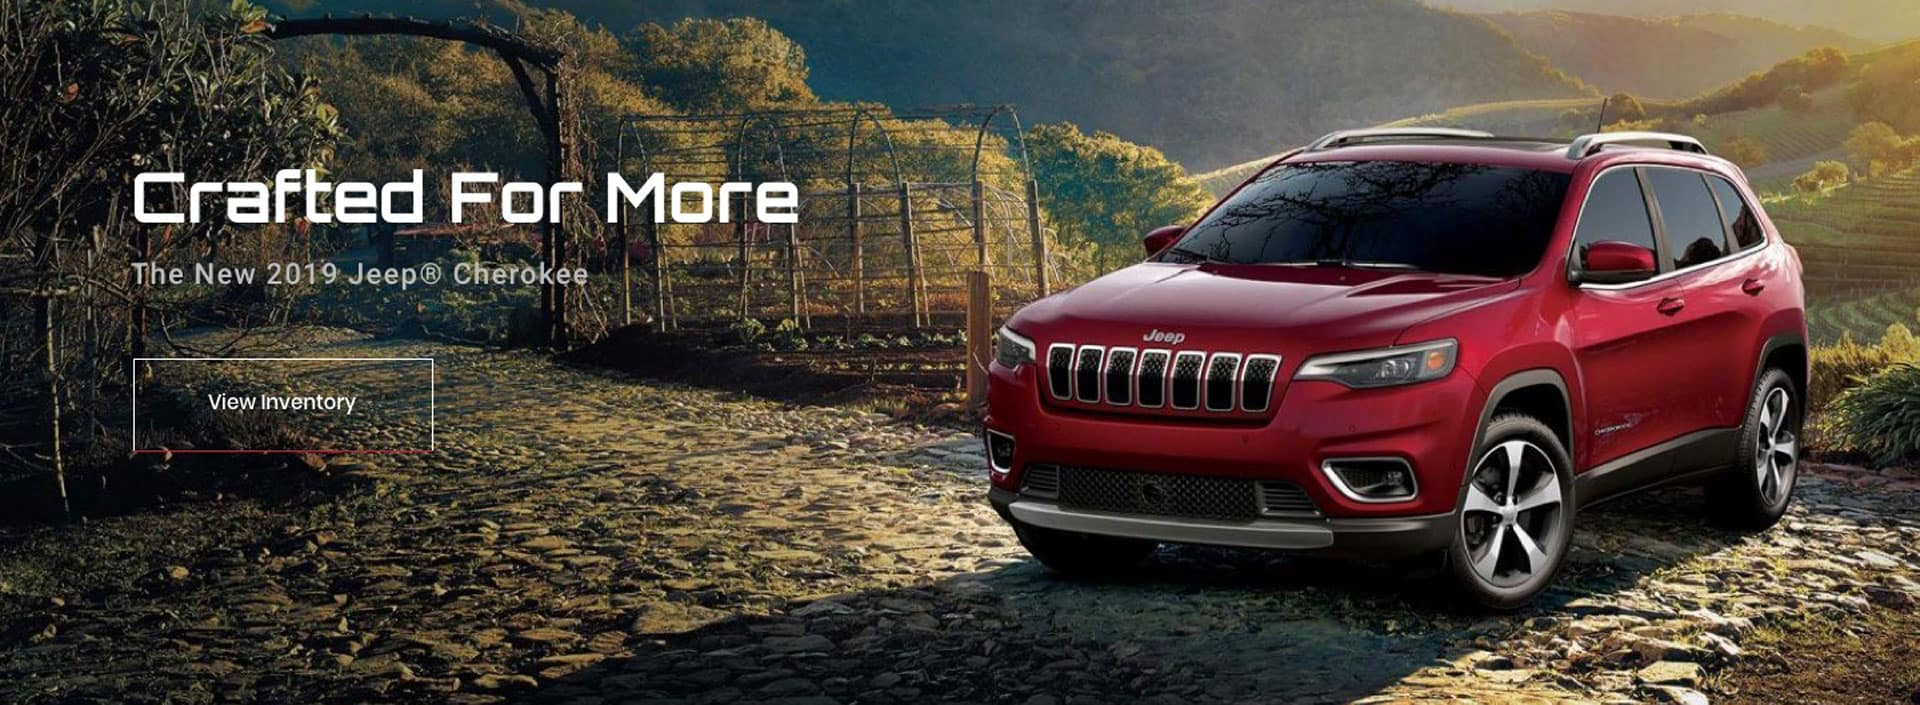 Crafted For More The New 2019 Jeep Cherokee View Inventory Slider of Red Front/Side view of a Cherokee model